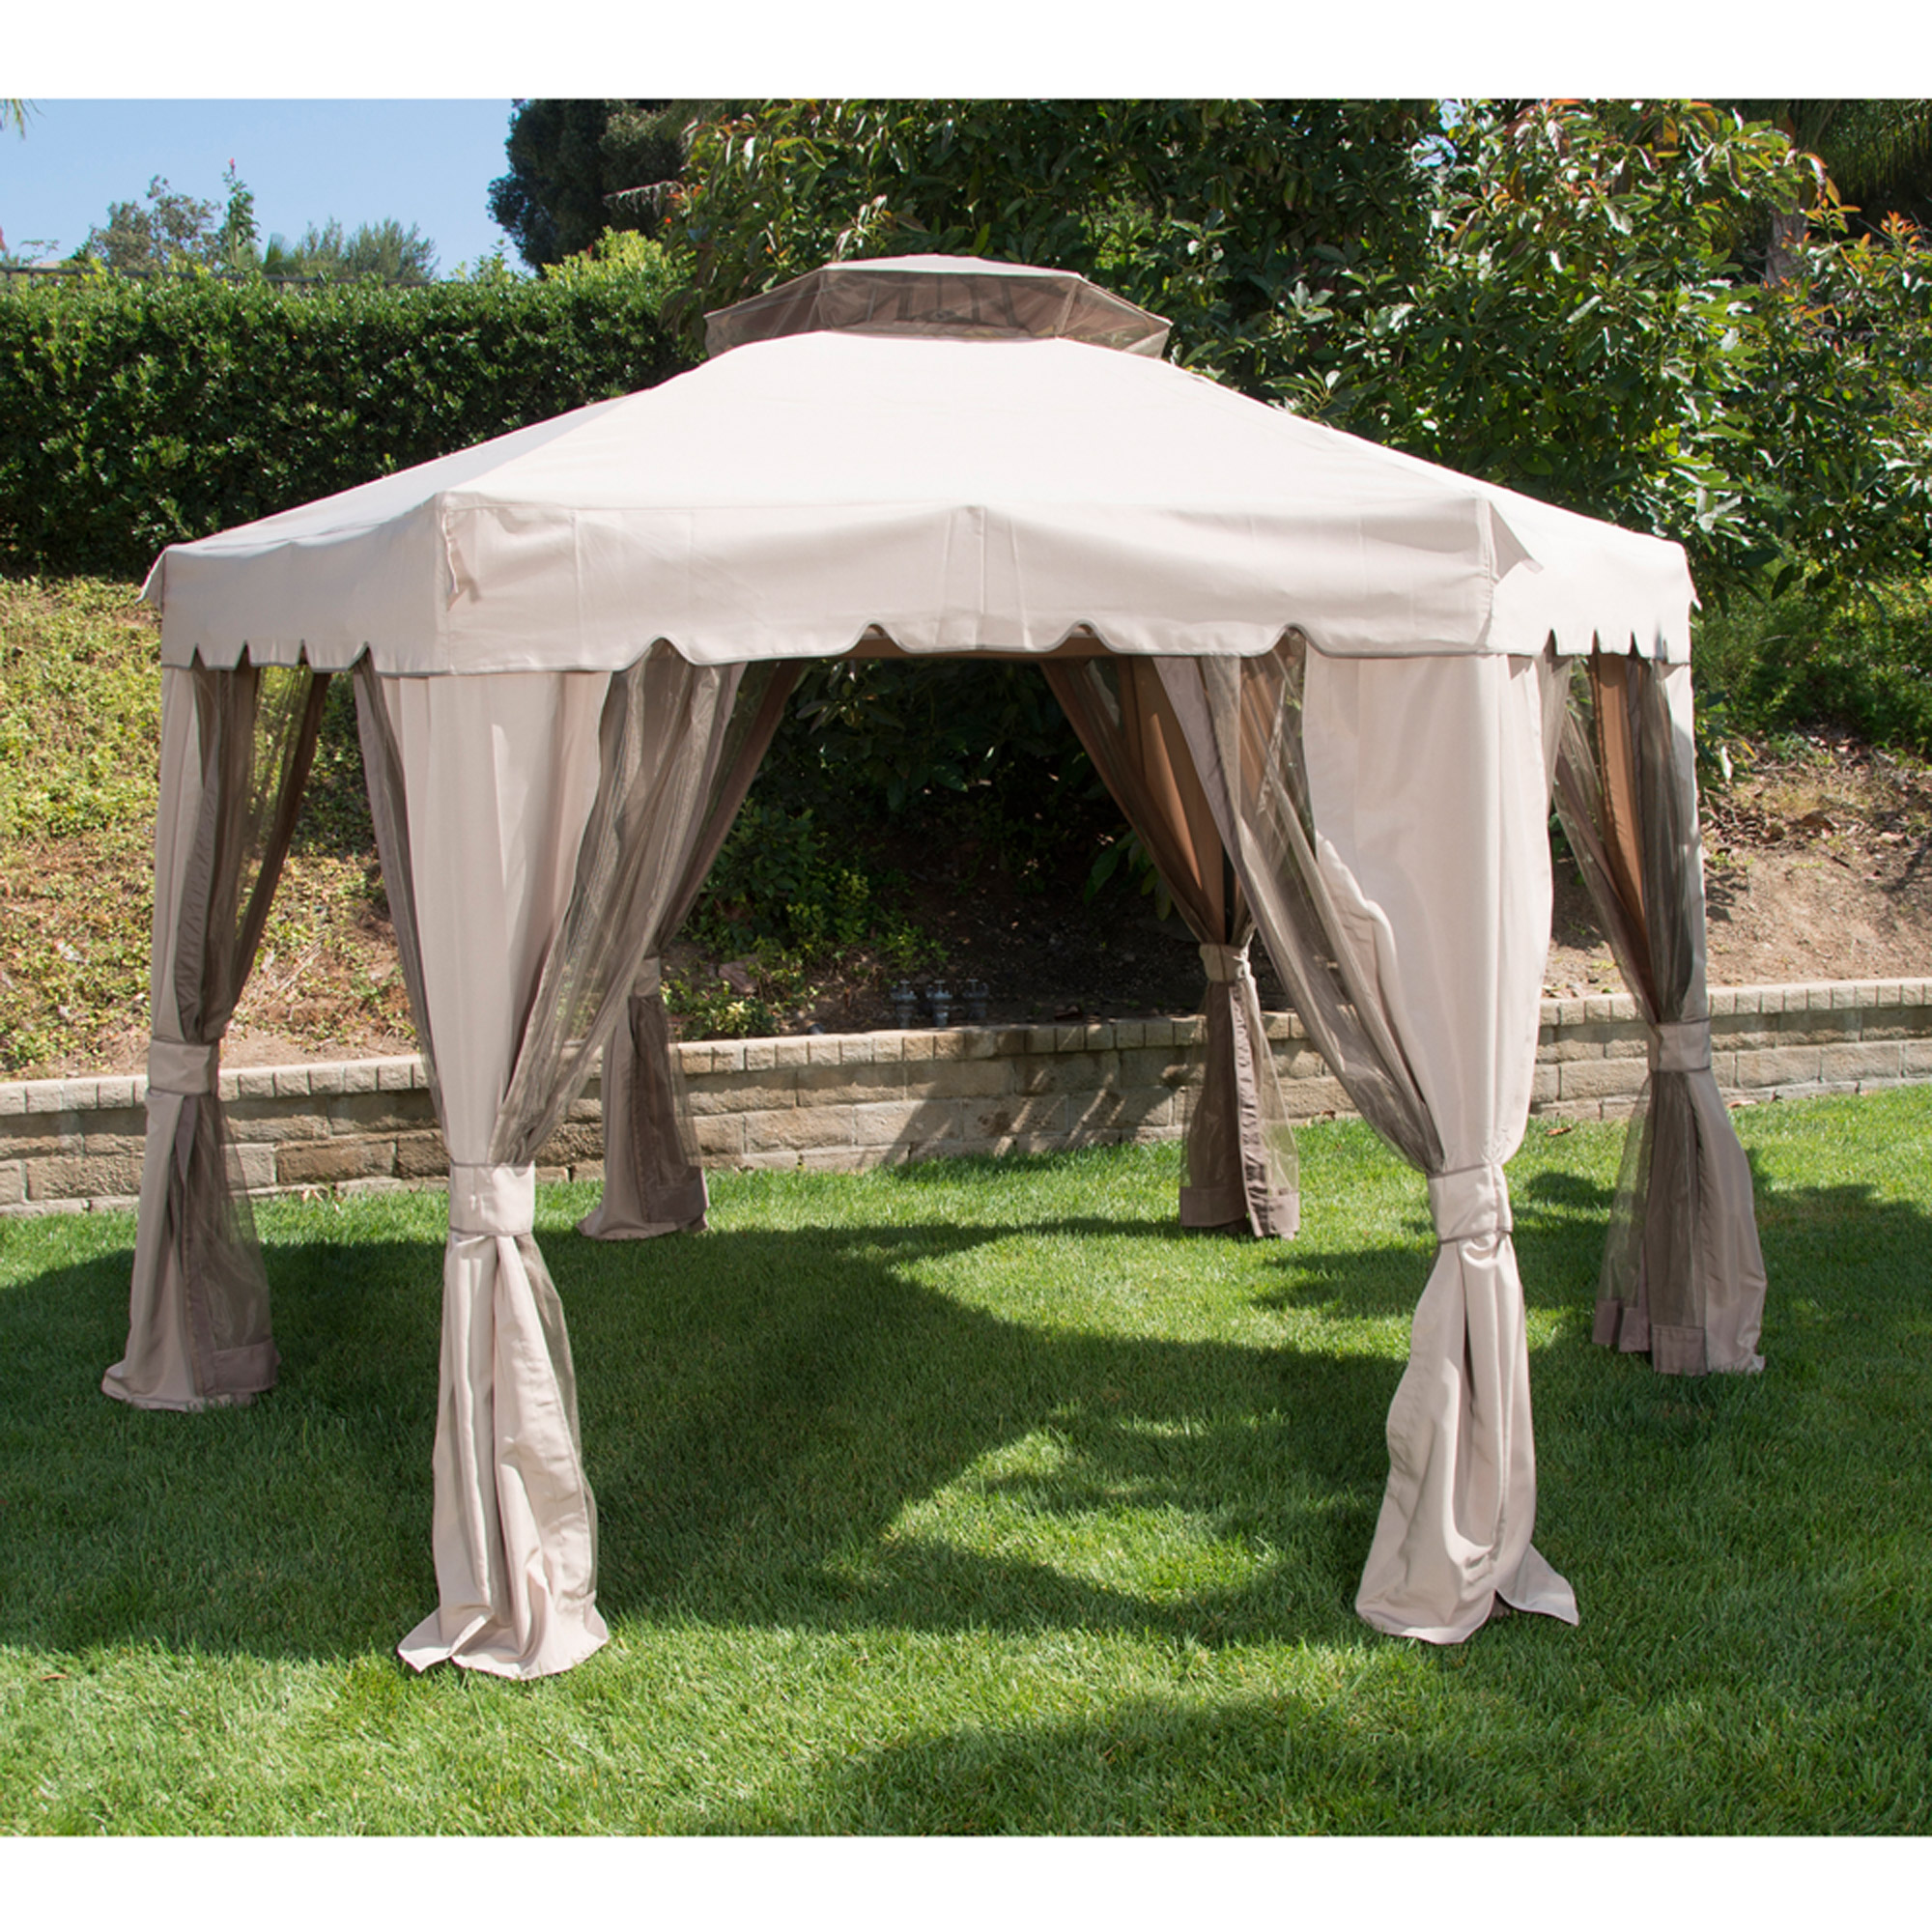 outdoor storage organization awning b sheds king carports home canopy universal canopies car n d portable garages the